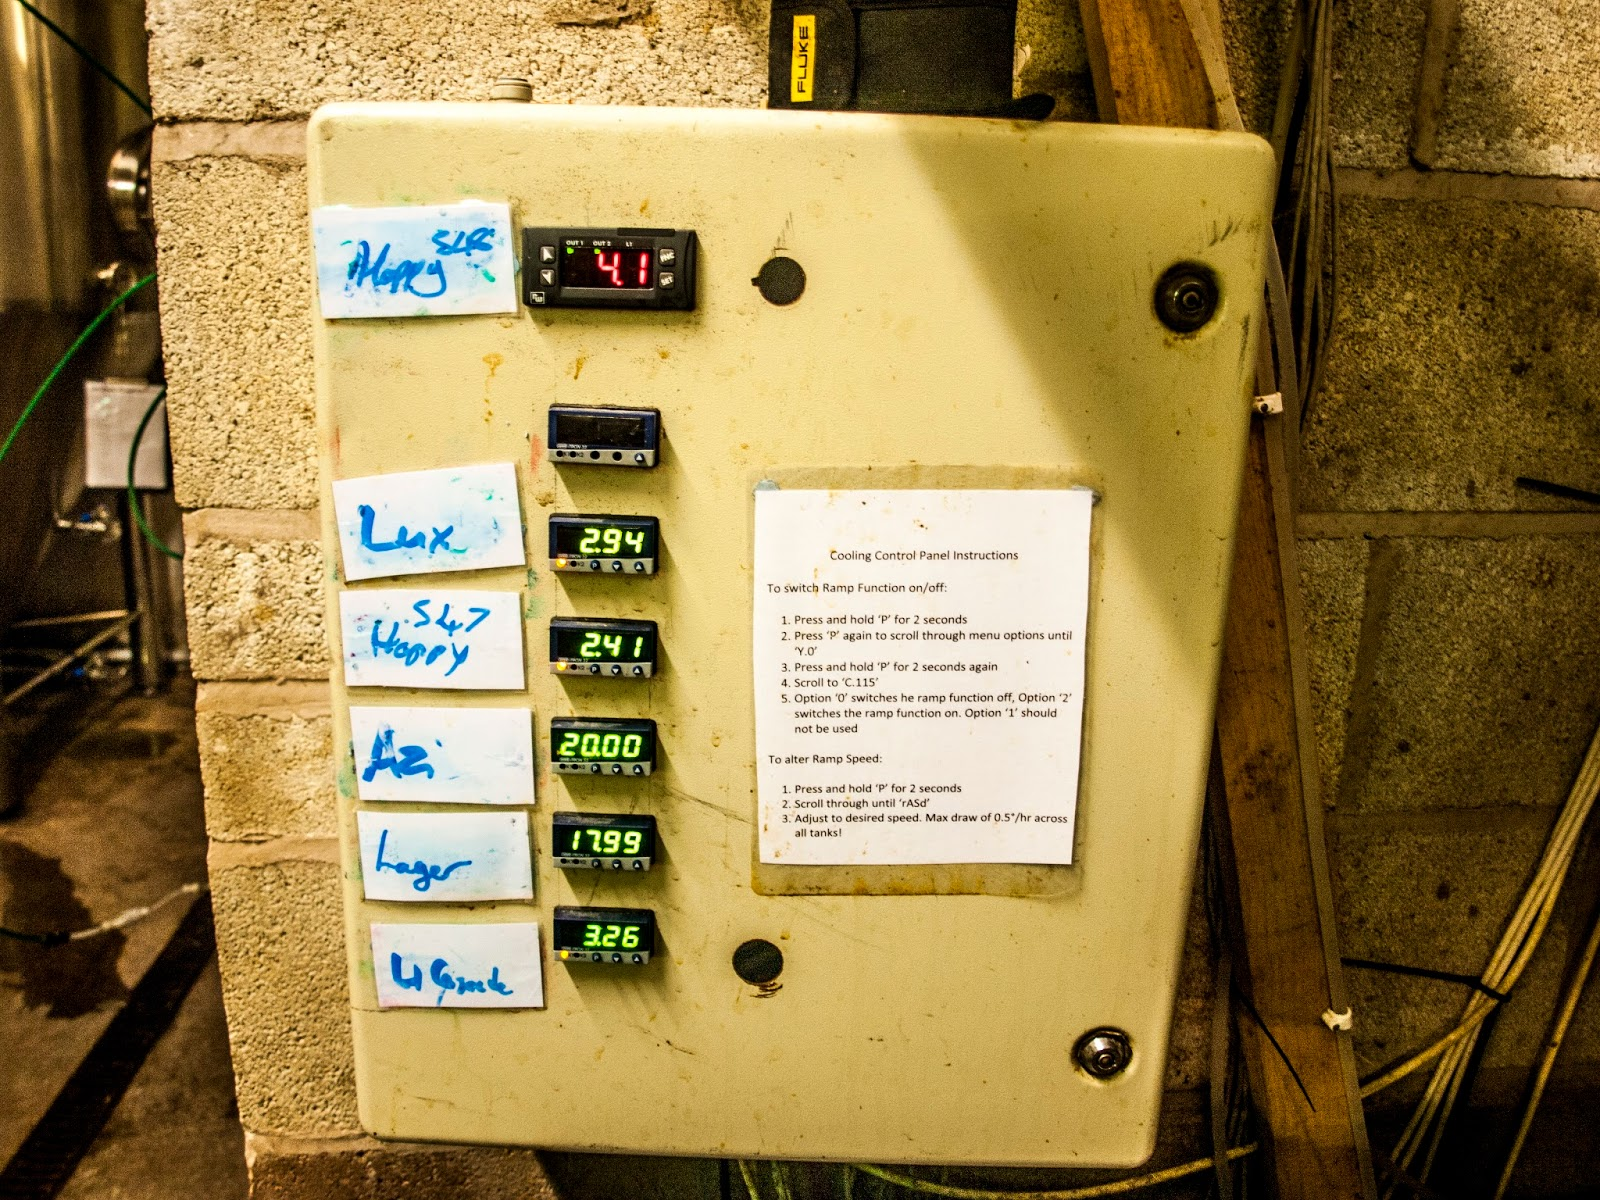 Hardknott Daves Beer And Stuff Blog Temperature Control Of On Off Fermentation